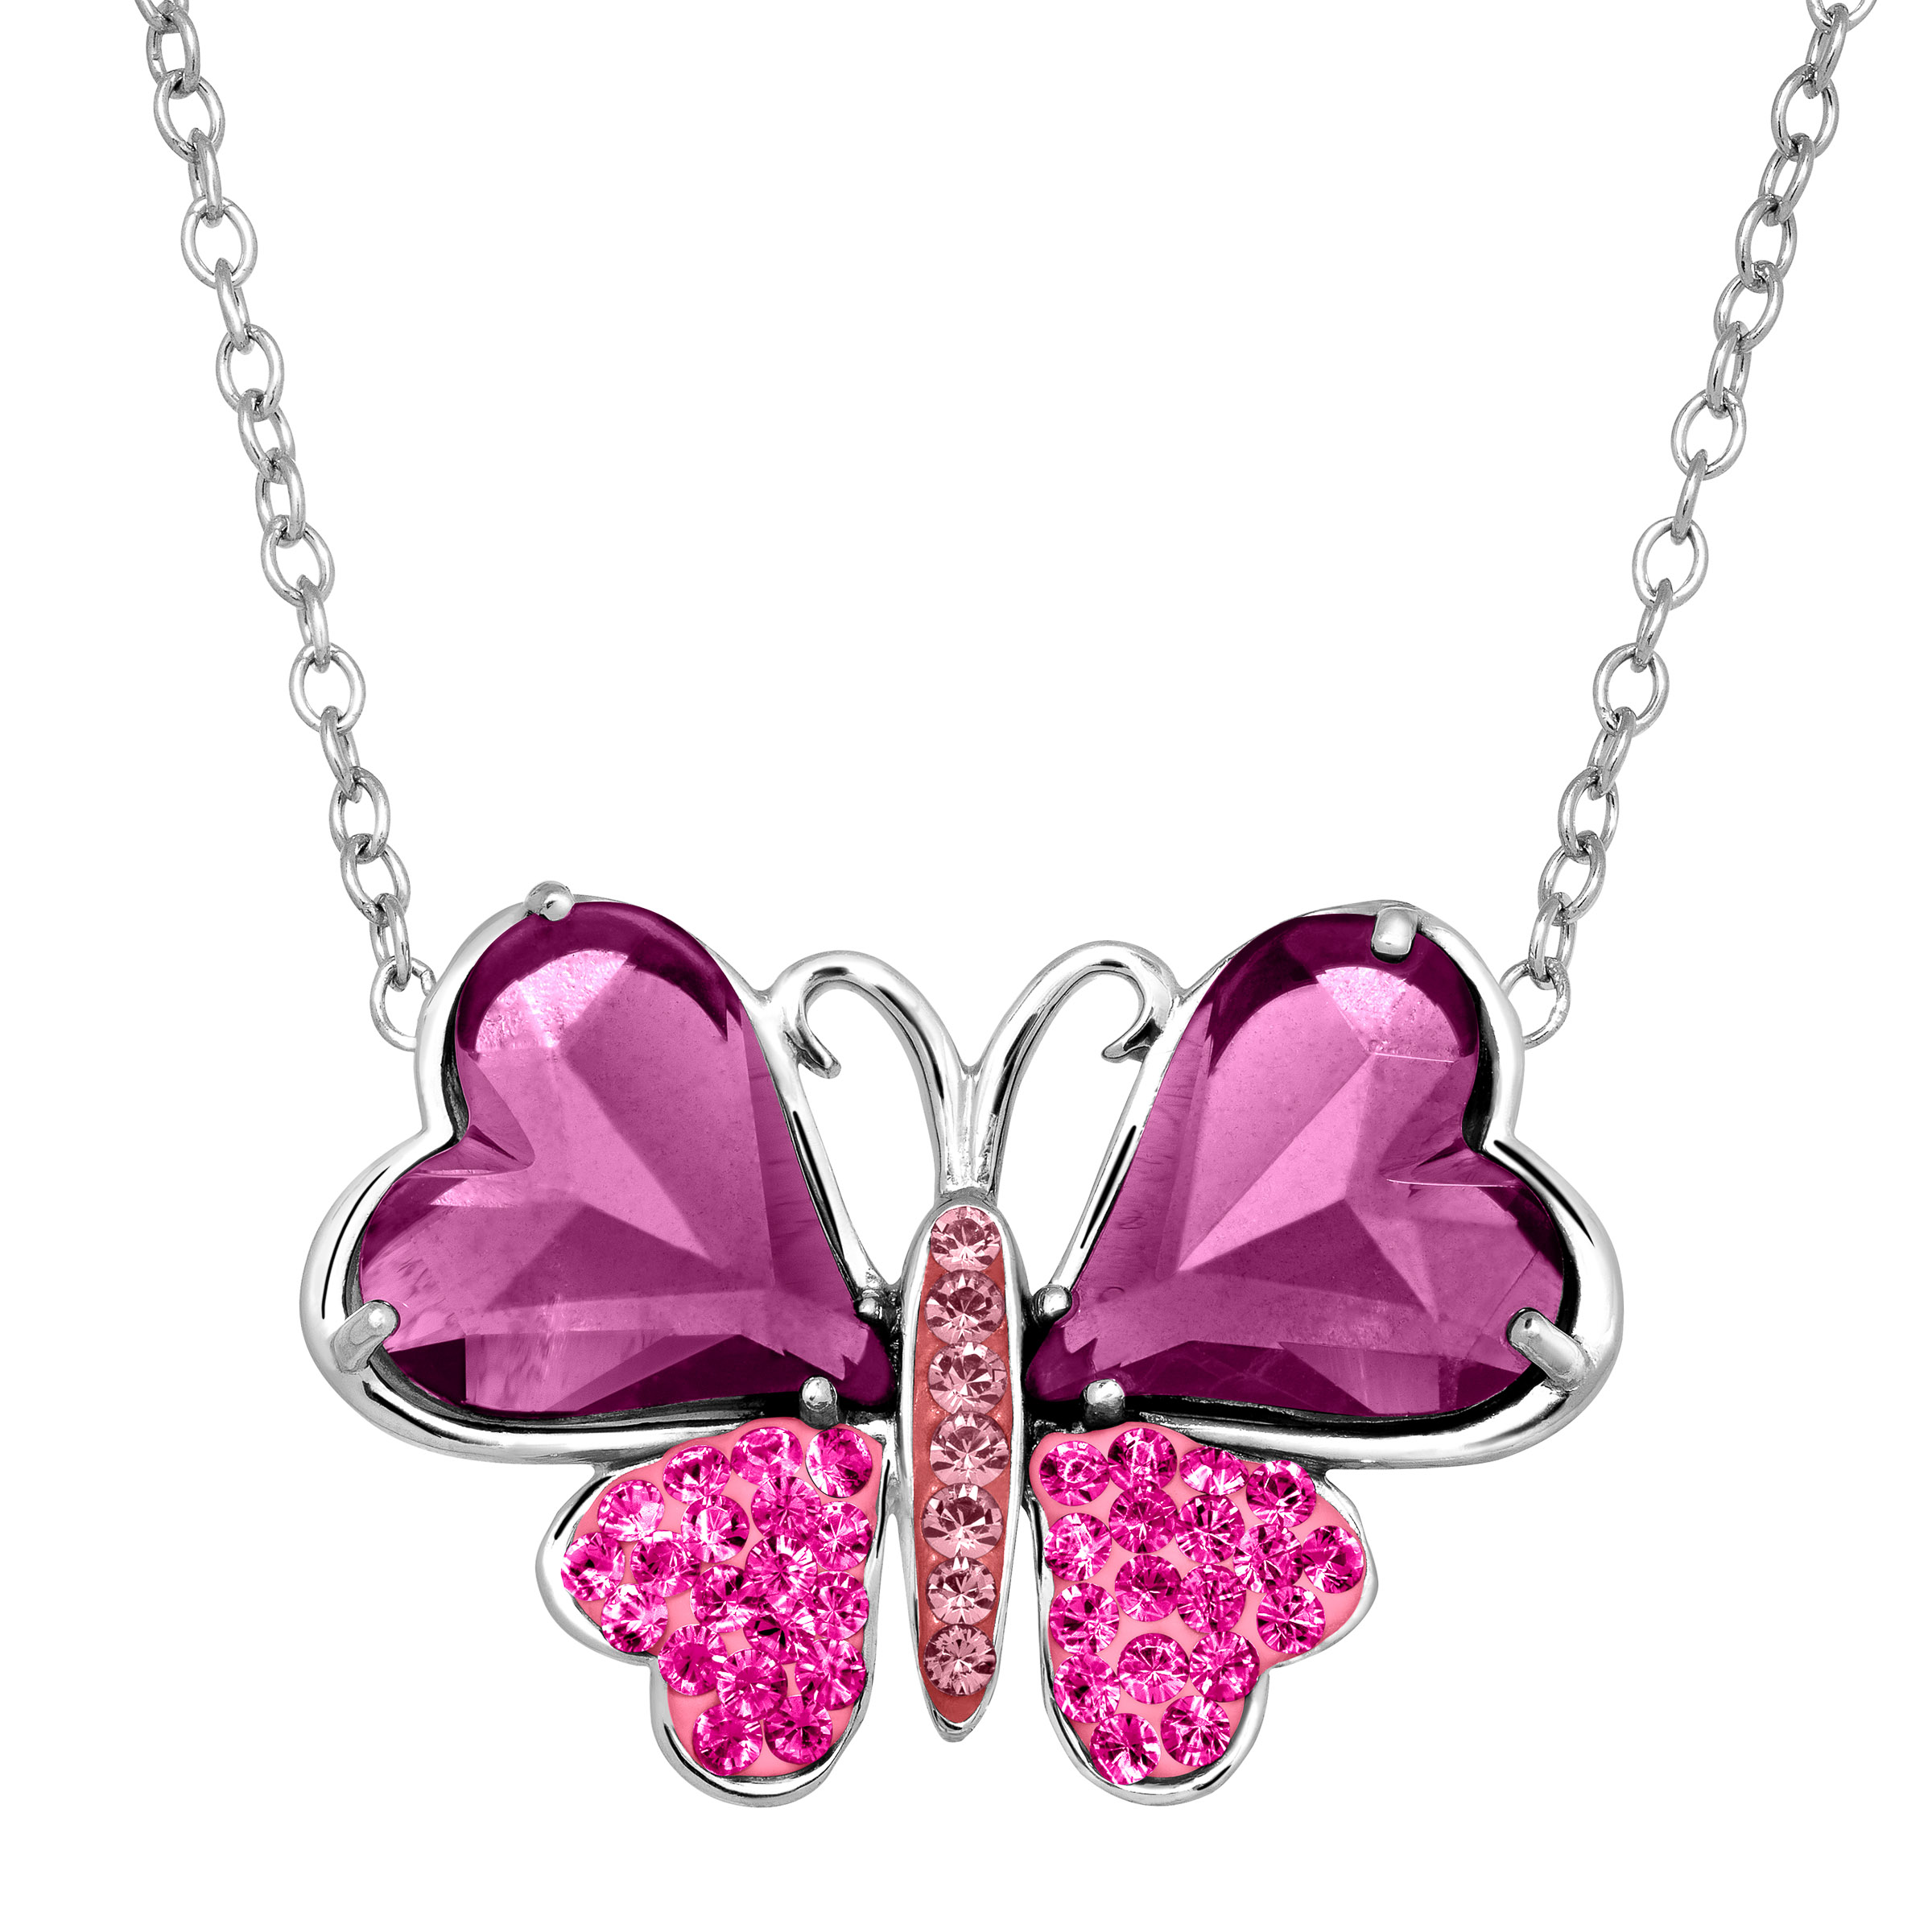 Richline Luminesse Two-Tone Butterfly Pendant Necklace with Swarovski Crystals in Sterling Silver